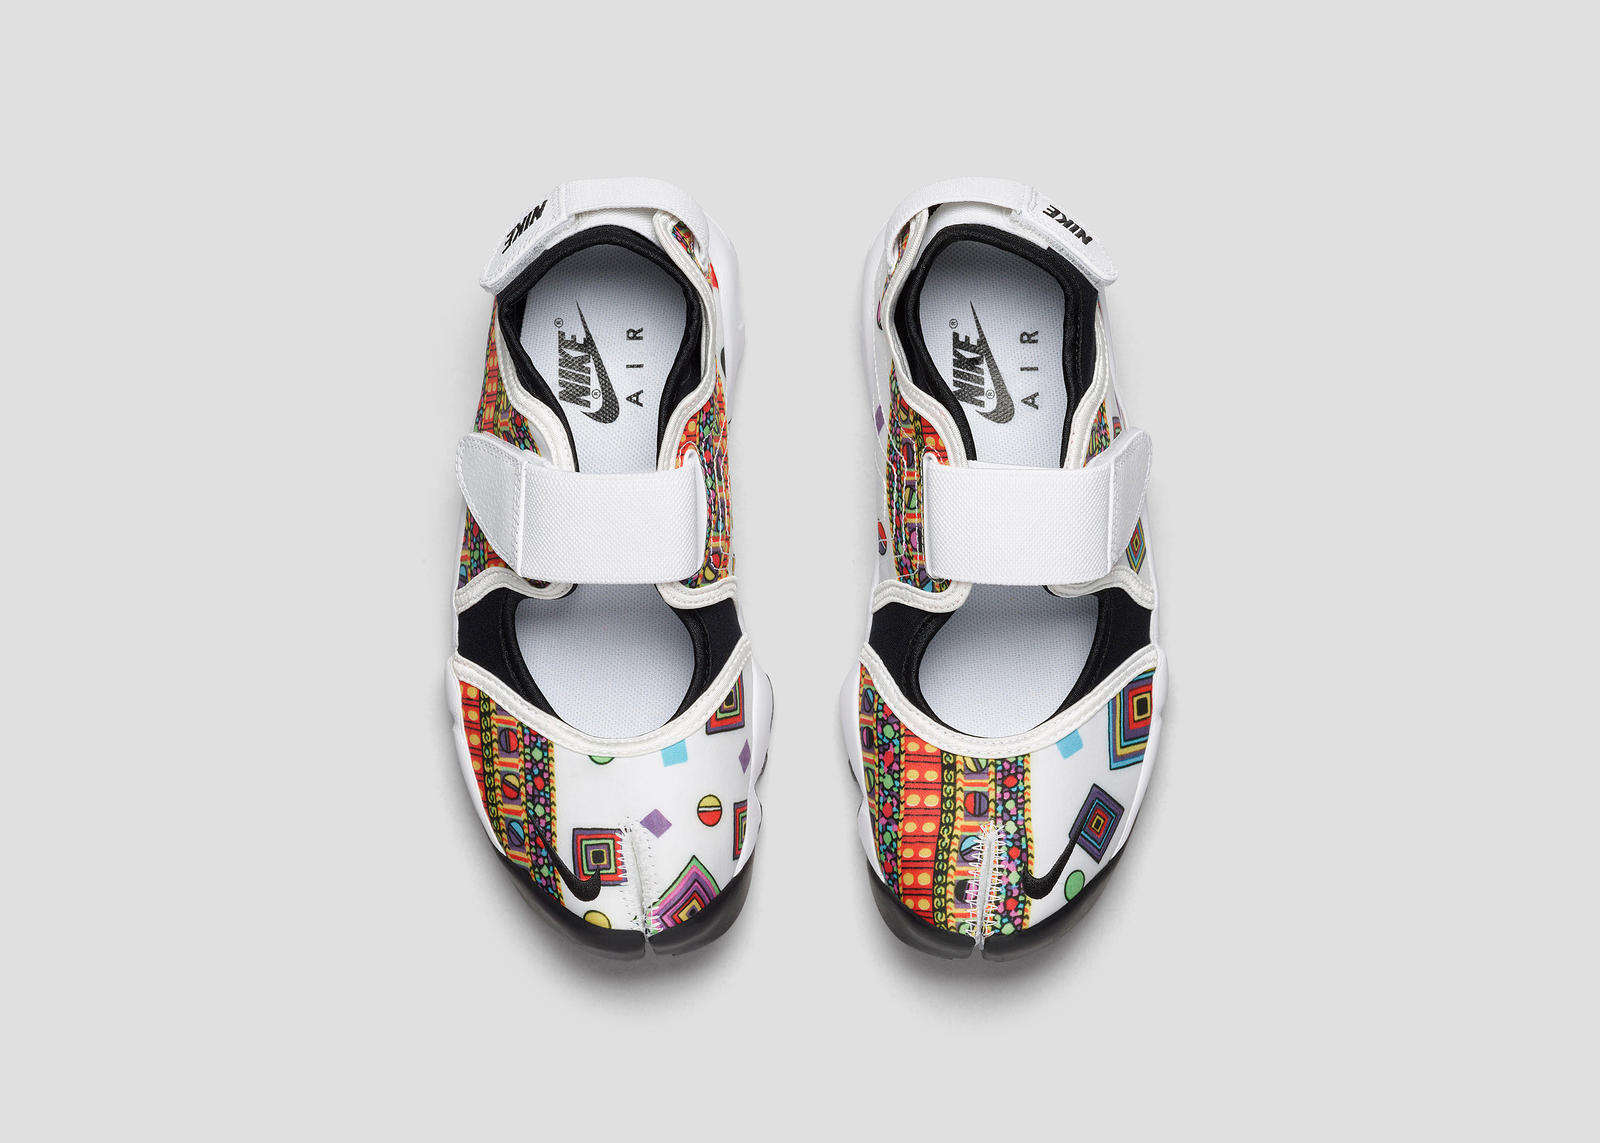 The Nike Air Rift Adds Edge To The Liberty Collection Nike